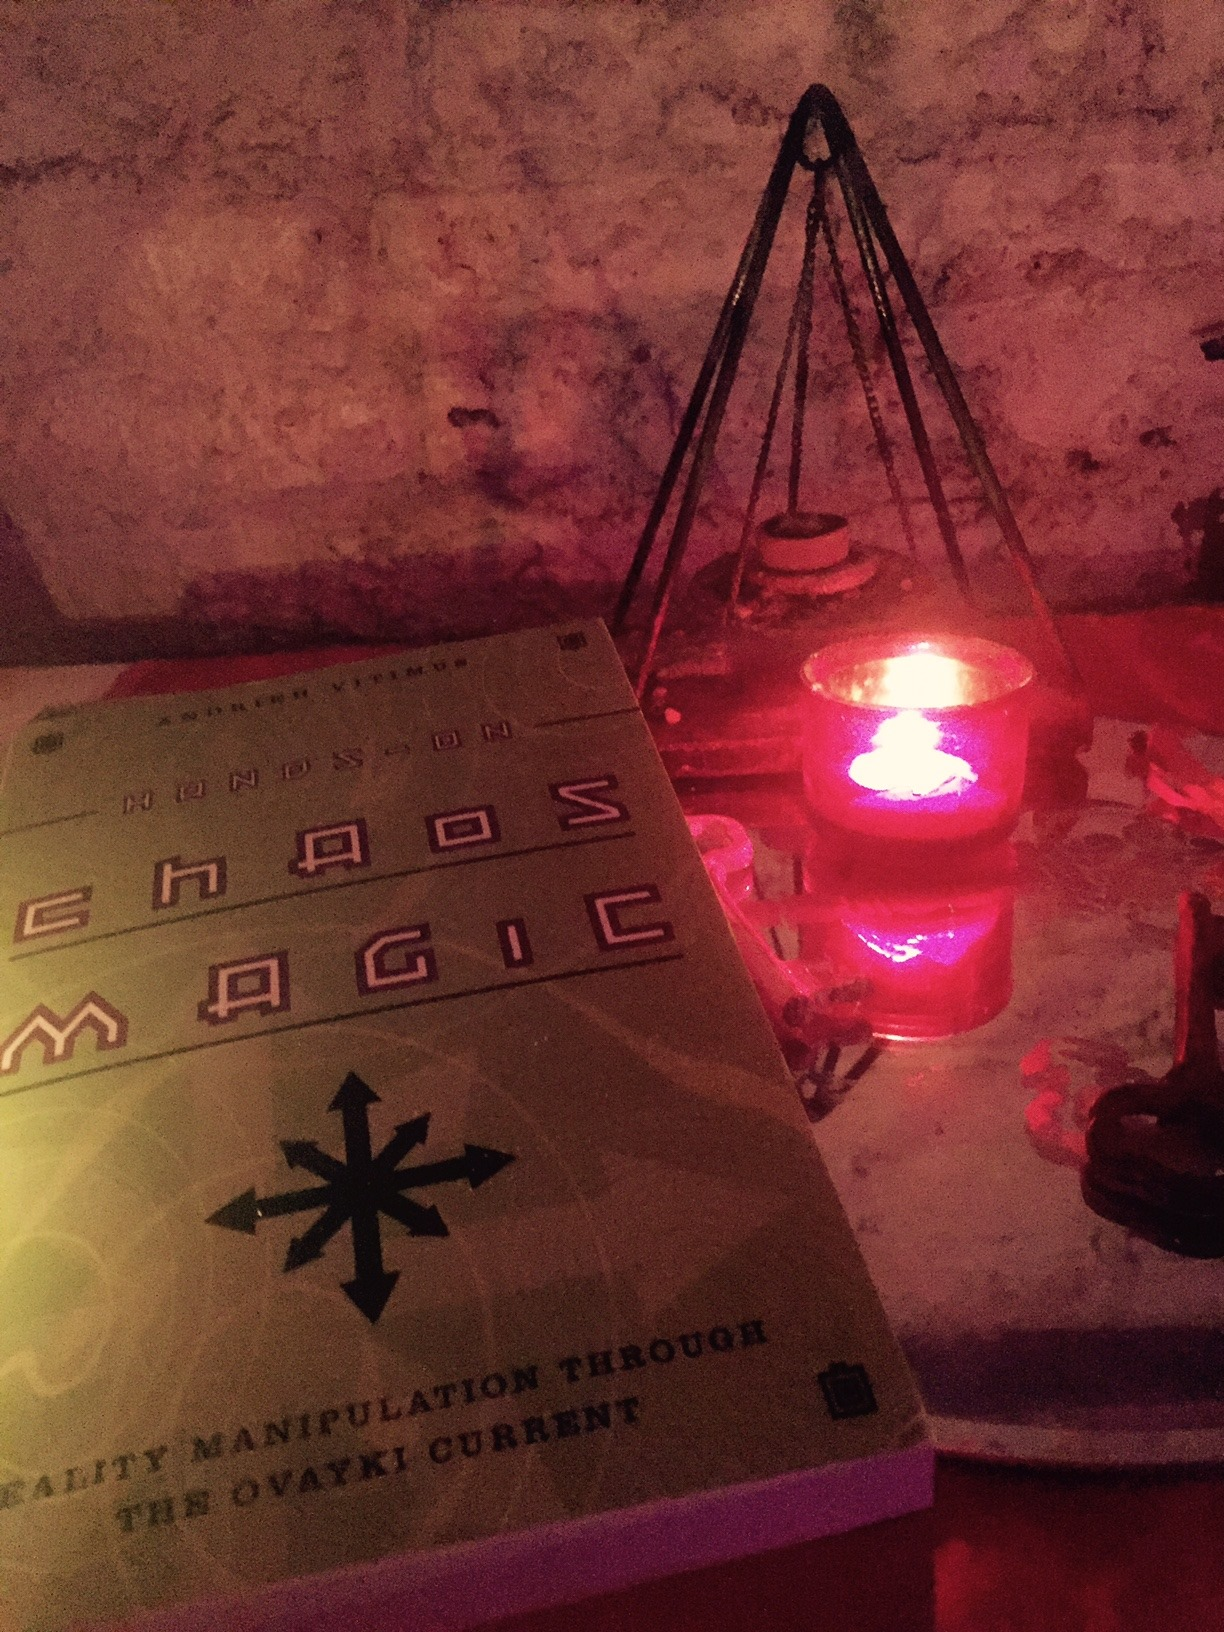 Cleveland Chaos Convergence: Sigil magic and getting the things you want